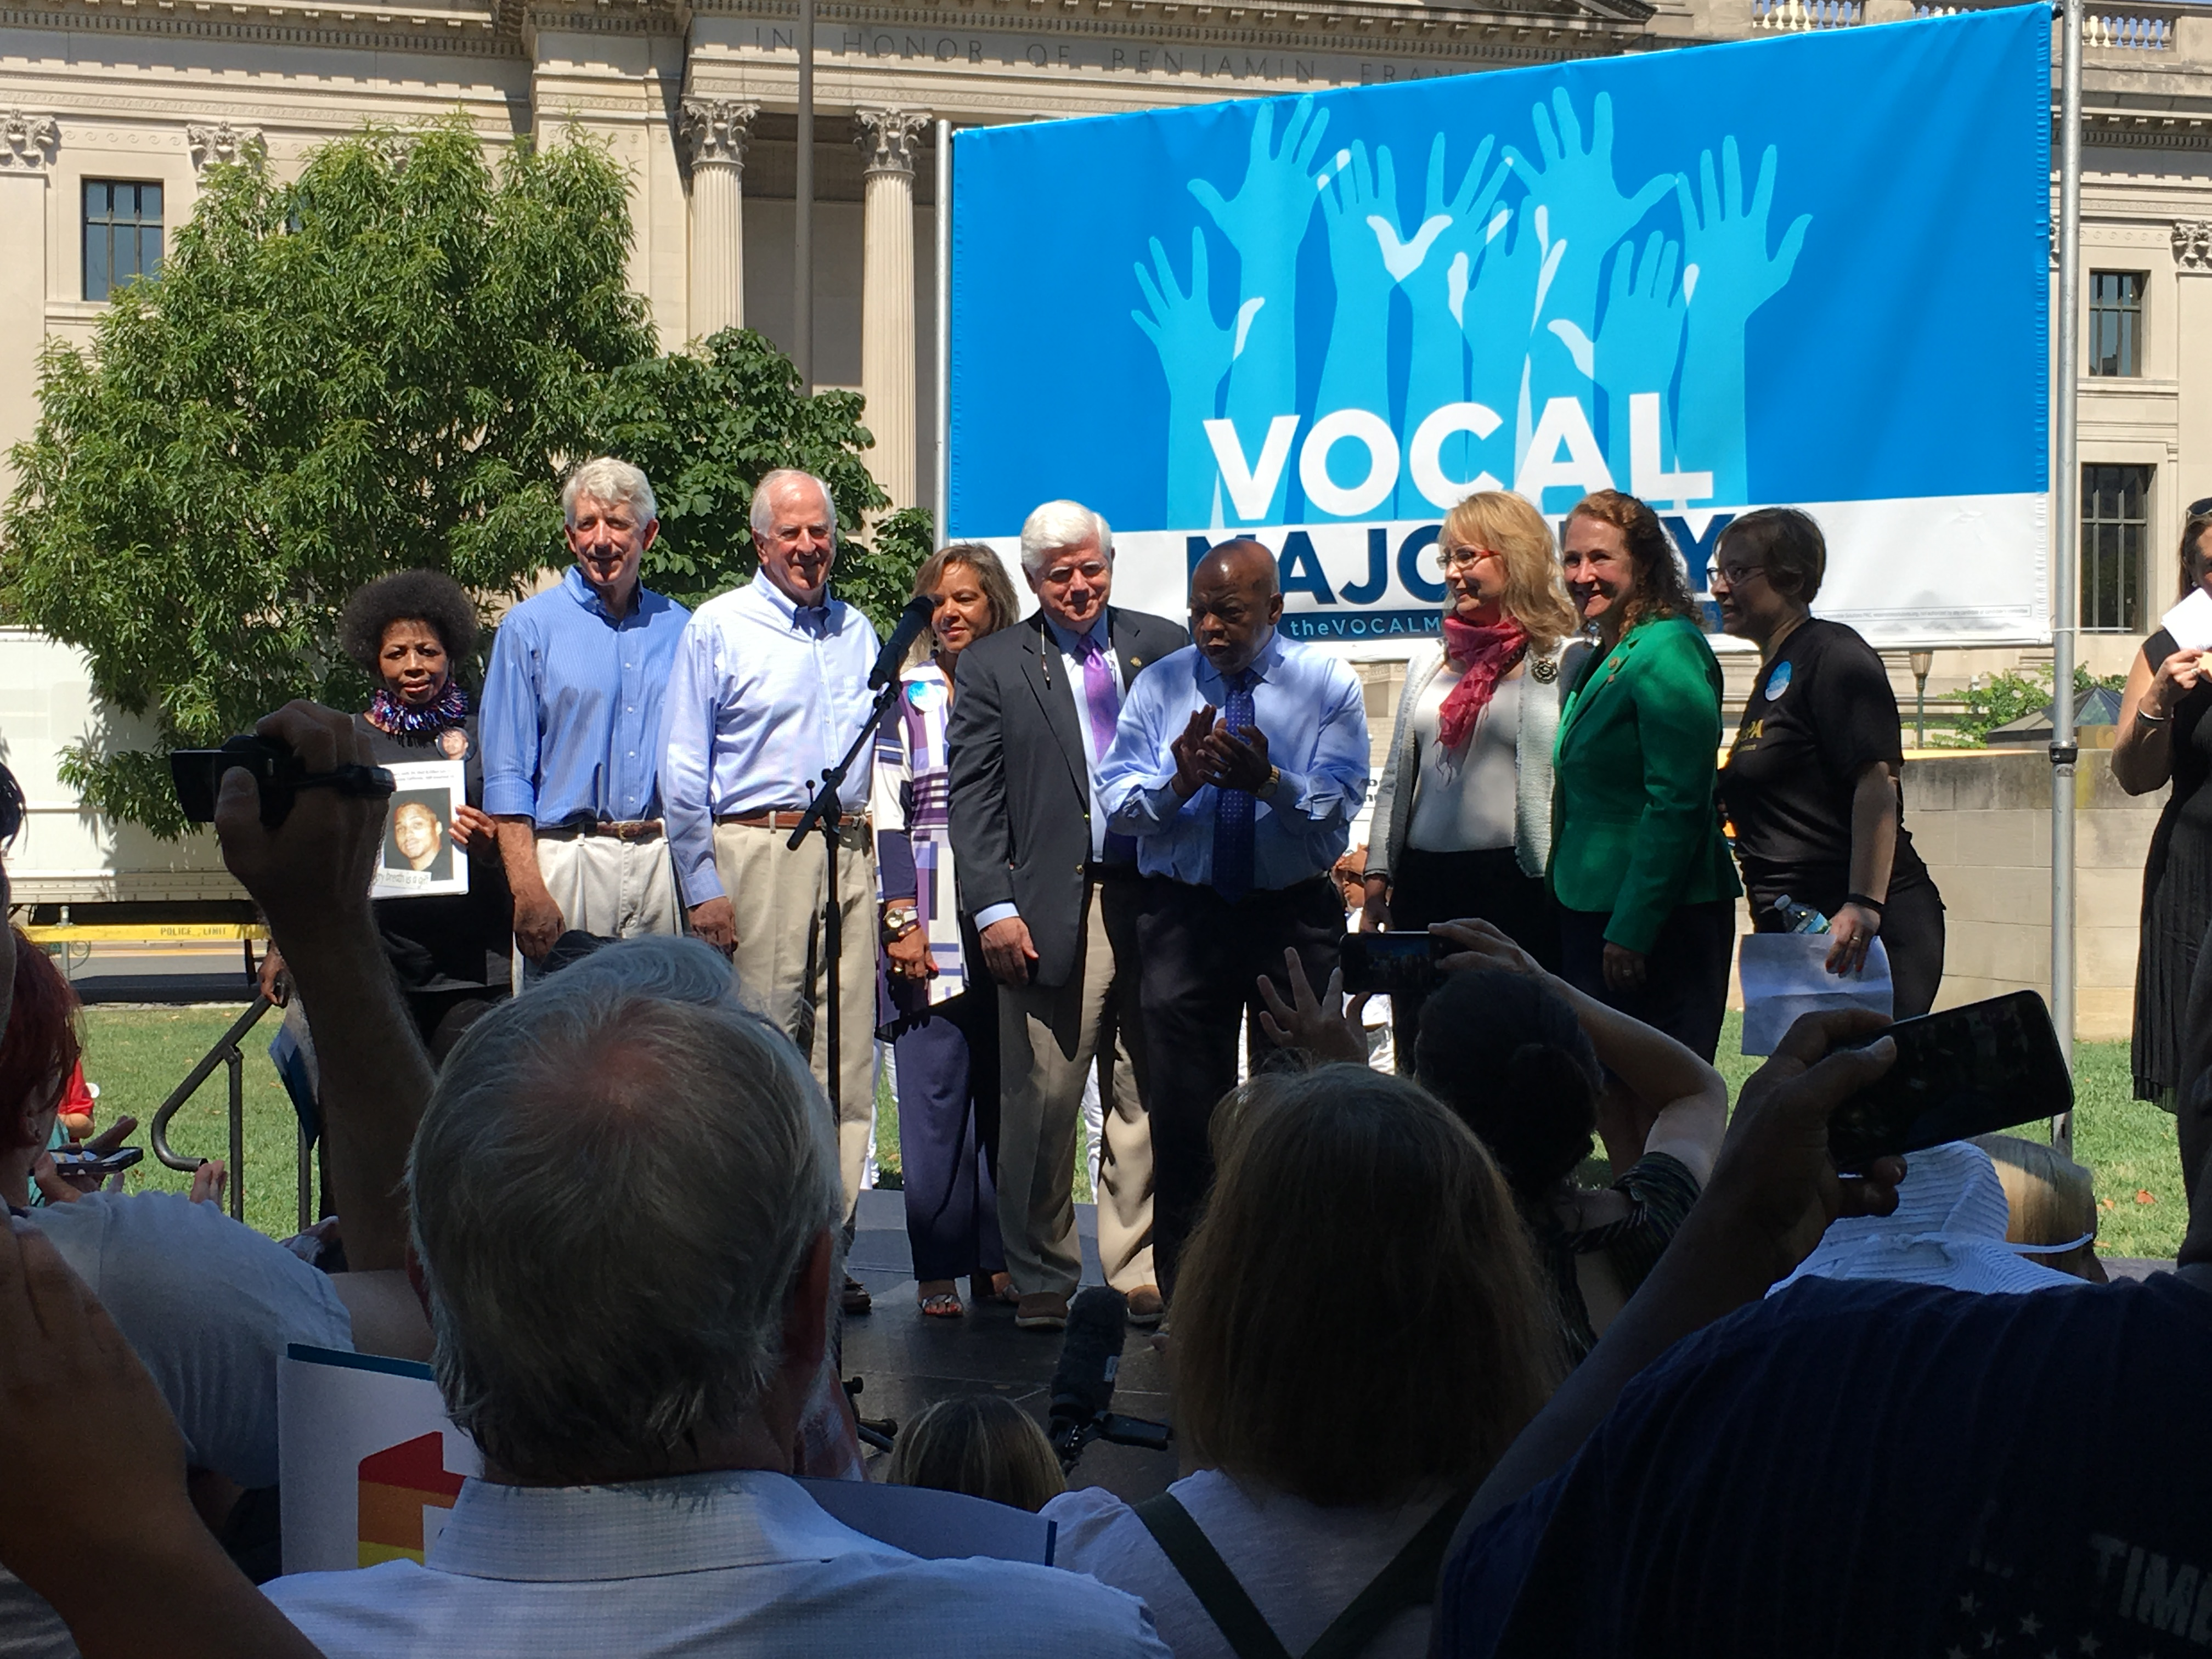 The Vocal Majority